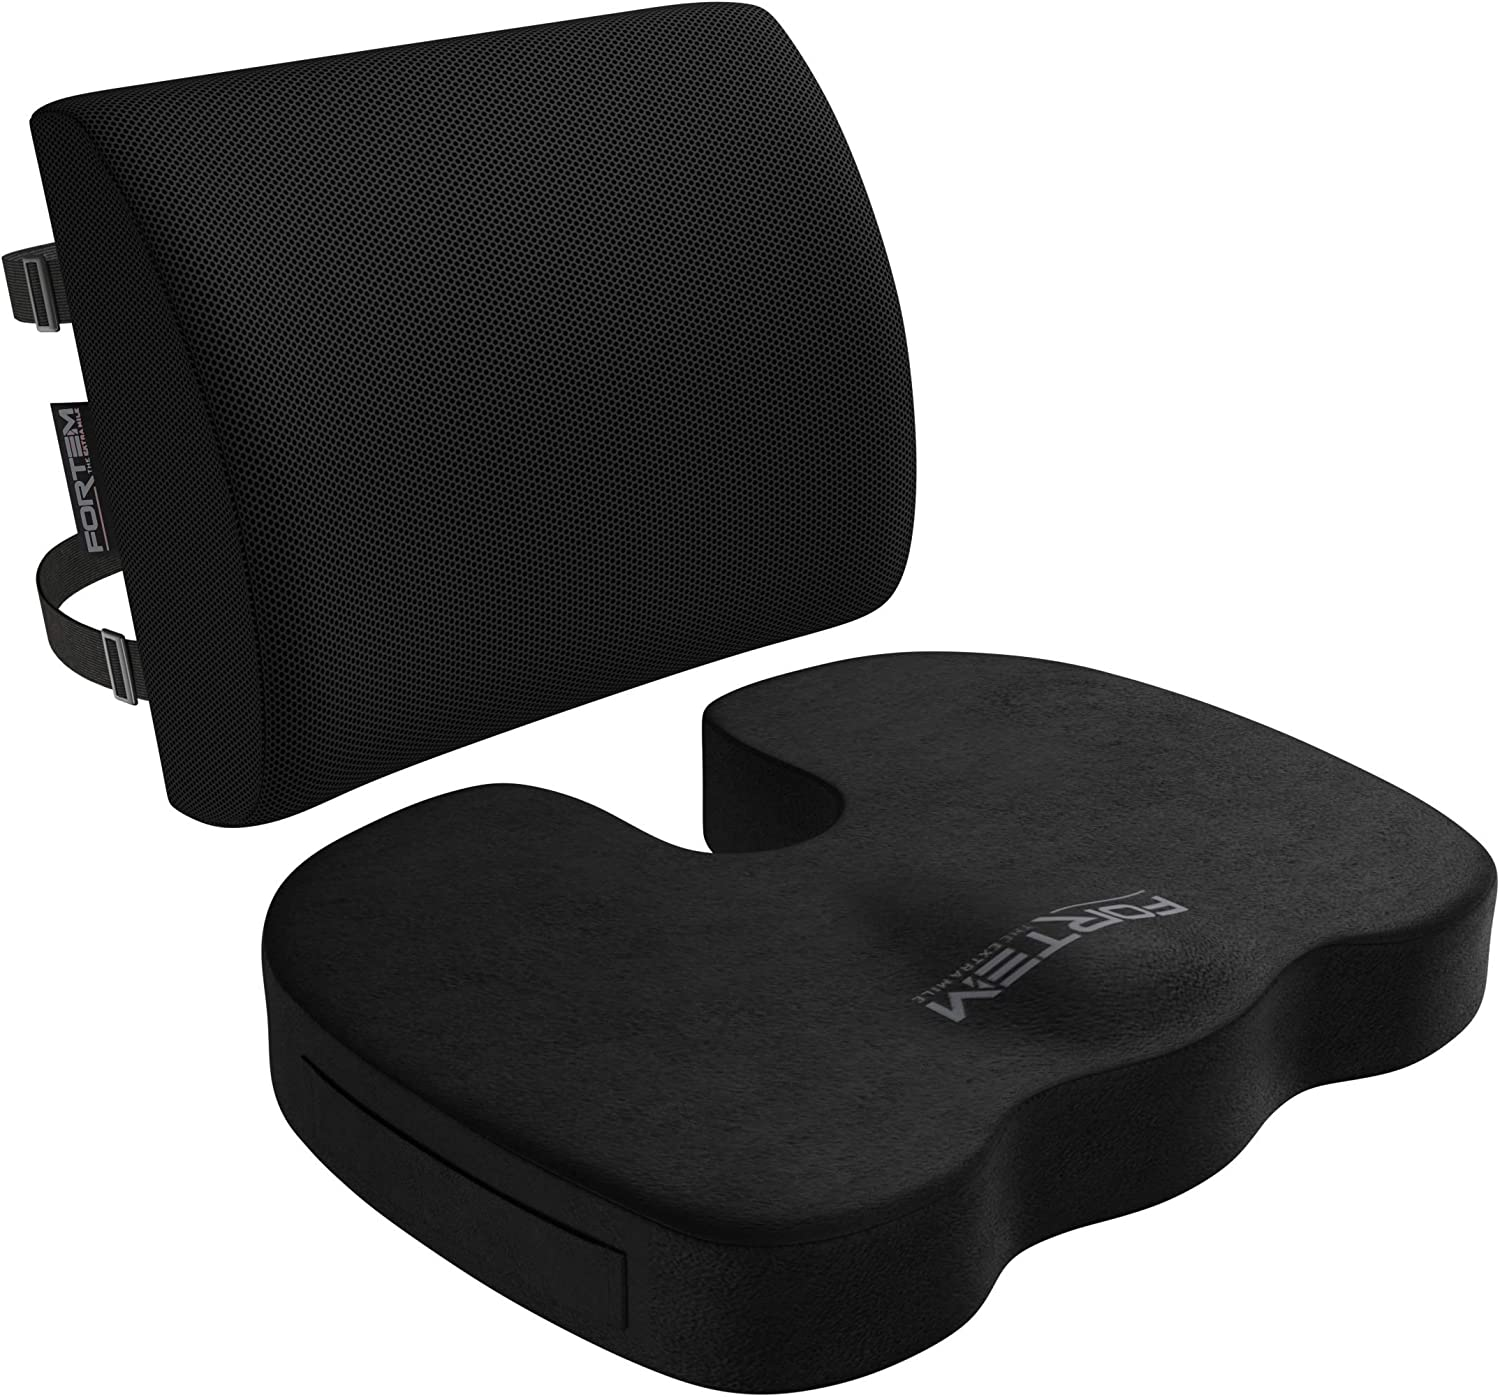 FORTEM Seat Cushion Lumbar Support for Office Chair, Car, Wheelchair, Memory Foam Pillow, Washable Covers